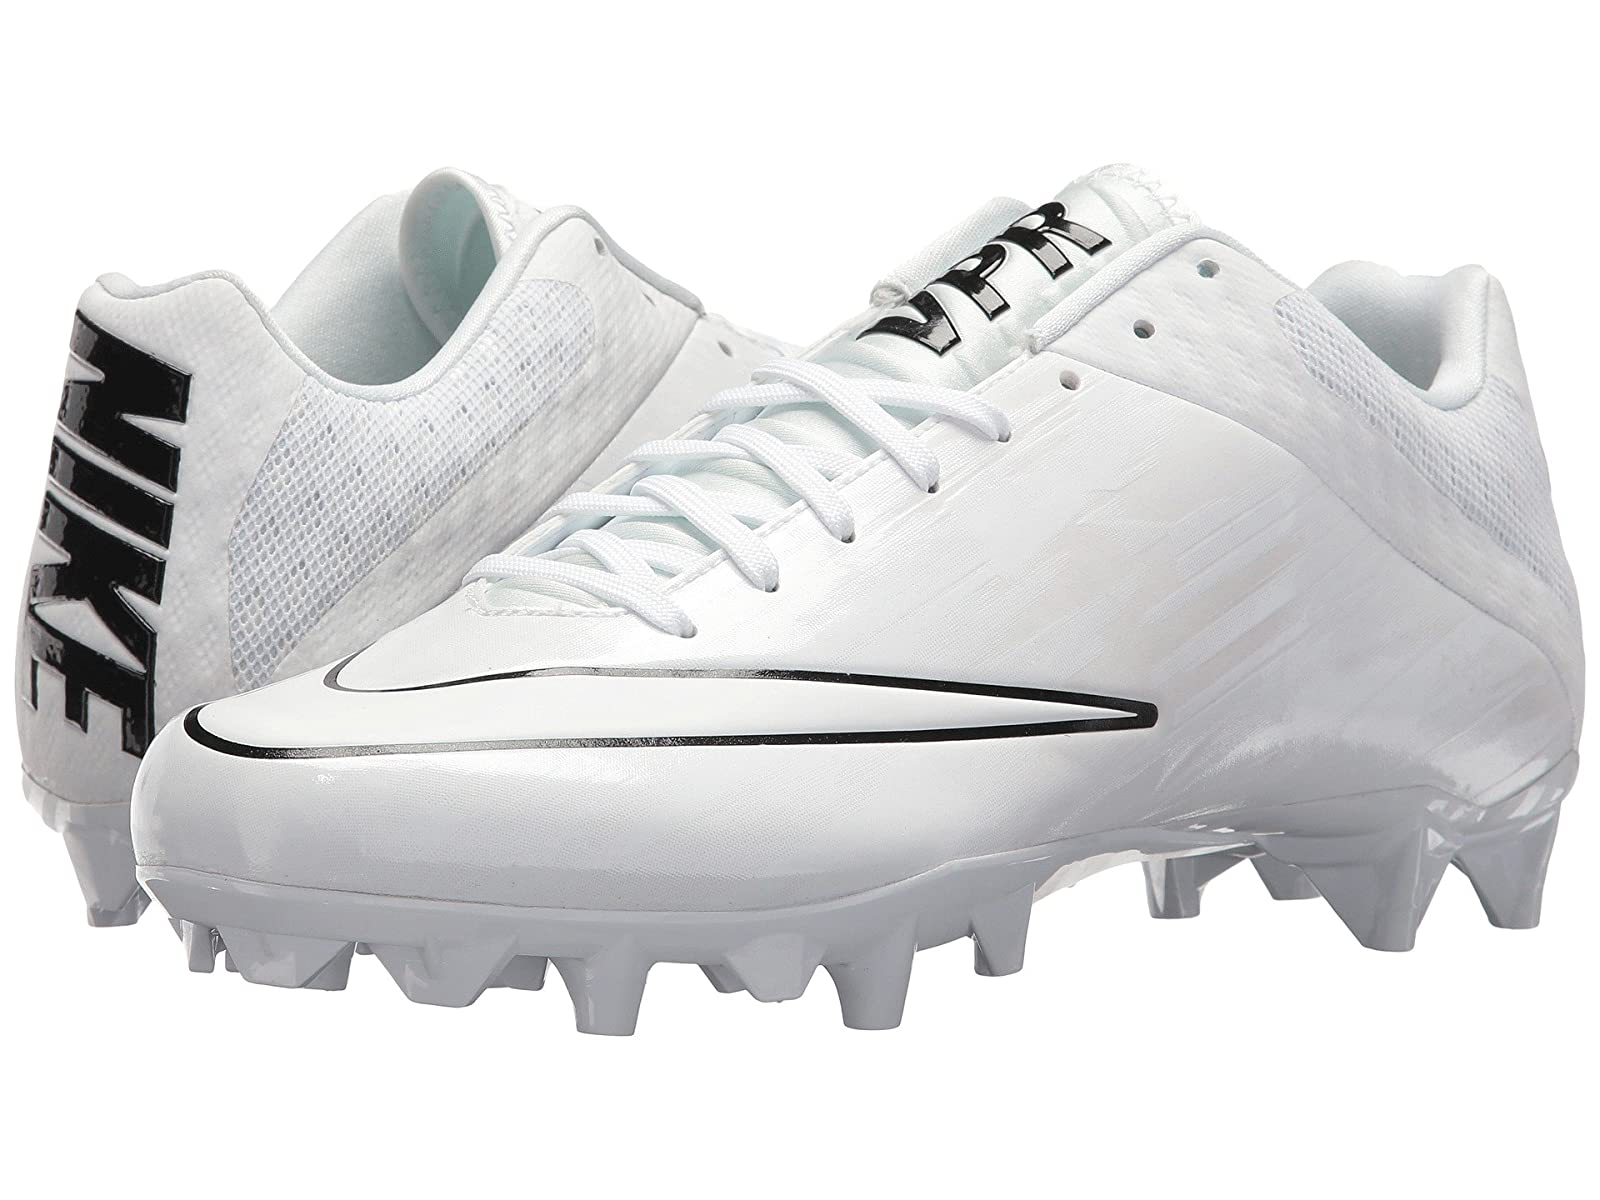 Nike Vapor Speed 2 Lacrosse CleatCheap and distinctive eye-catching shoes